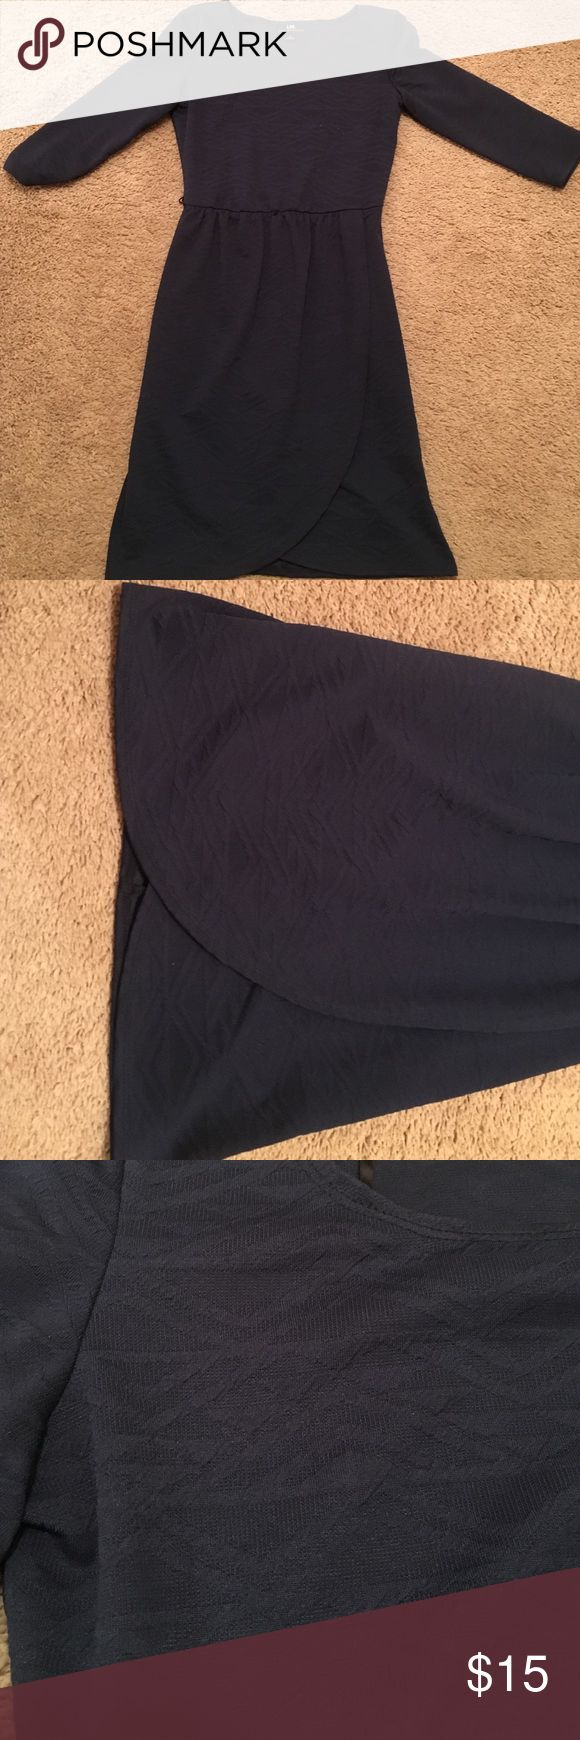 Long sleeve navy dress I.N. navy dress made of a thin quilted material with discreet triangular horizontal patterns. The middle is cinched and looks great with a thin belt. The bottom separates into two overlapping flaps. I.N. San Francisco  Dresses Long Sleeve